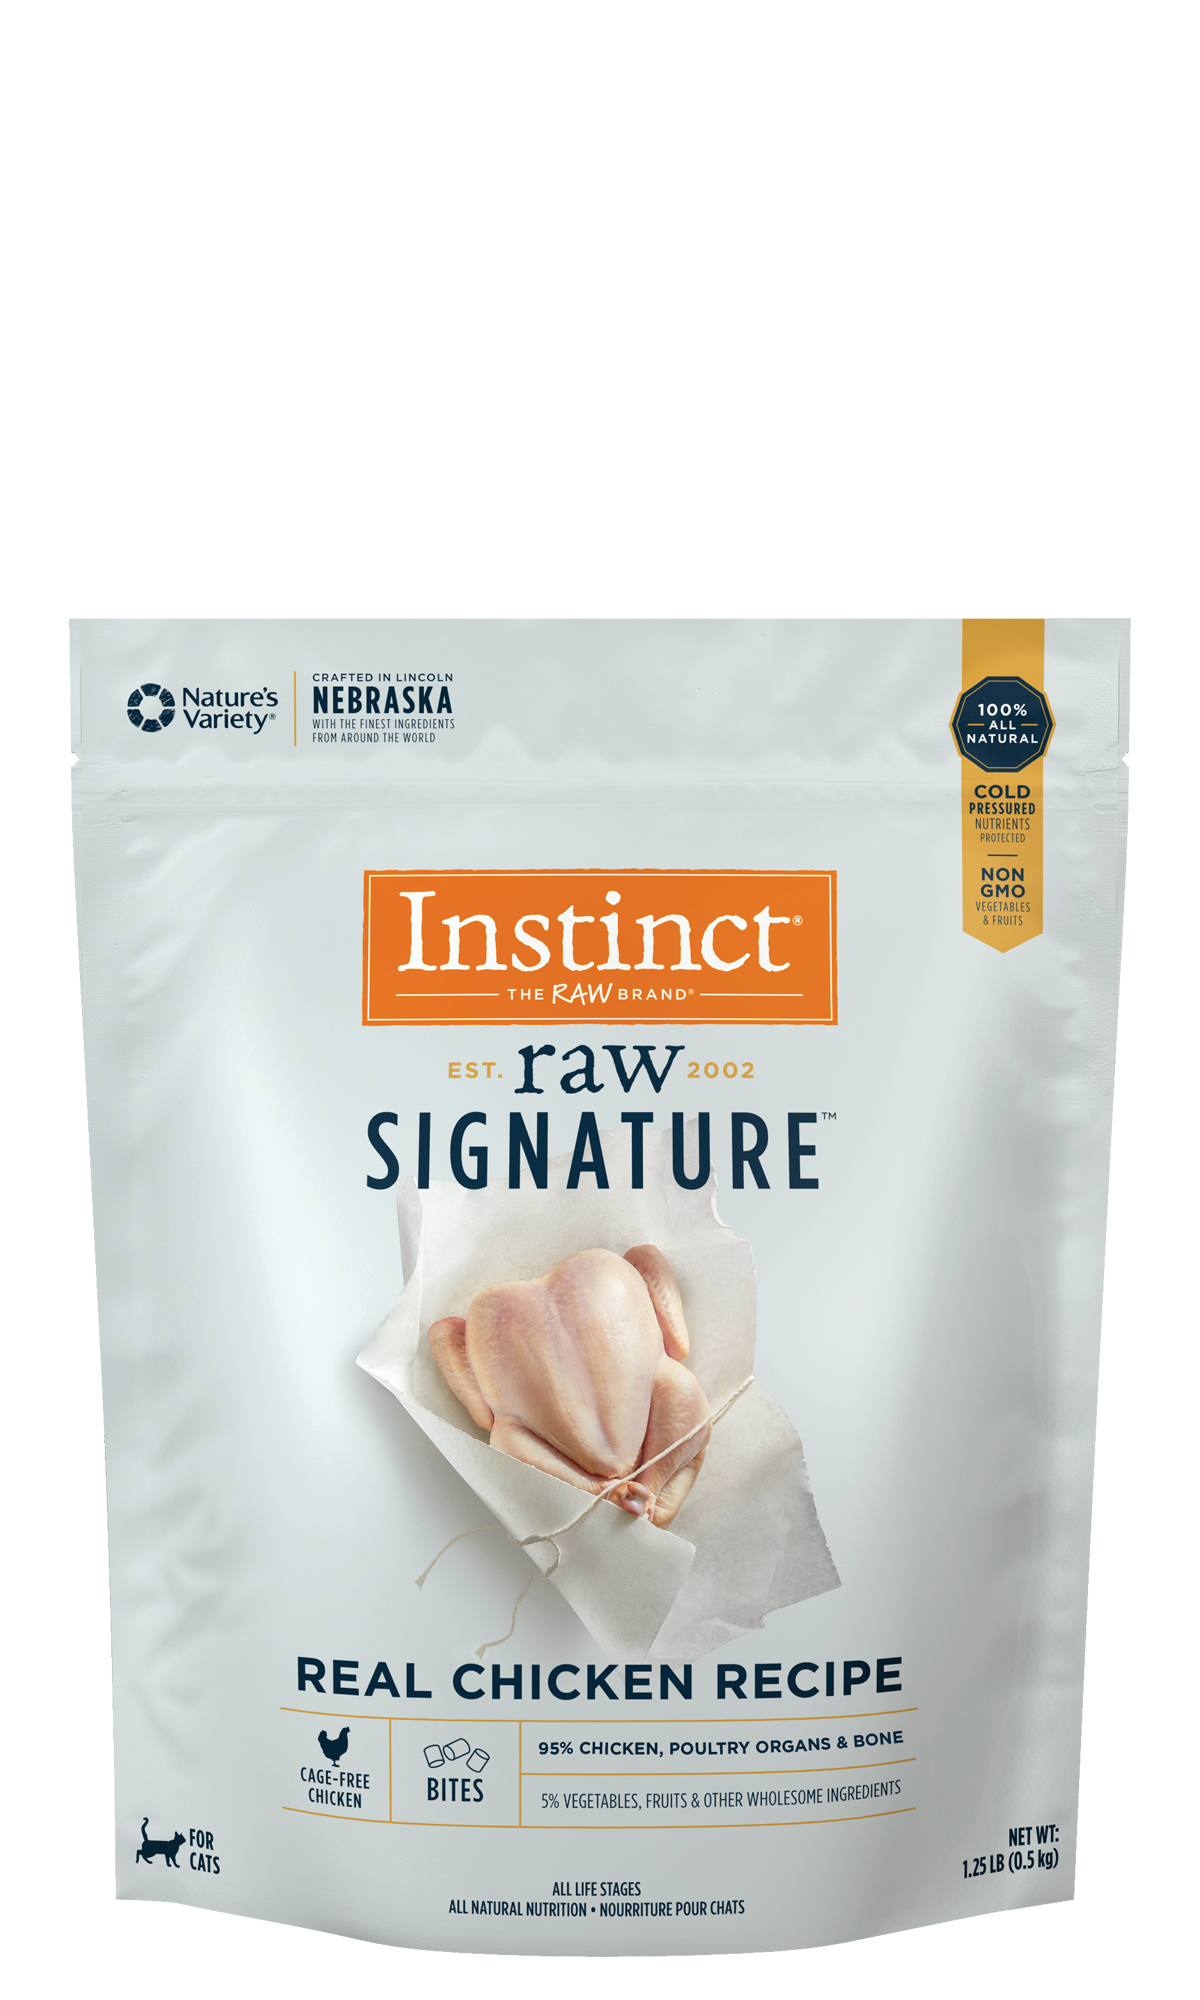 Instinct by Nature's Variety Raw Signature Real Chicken Recipe Frozen Bites Cat Food, 1.25-lb